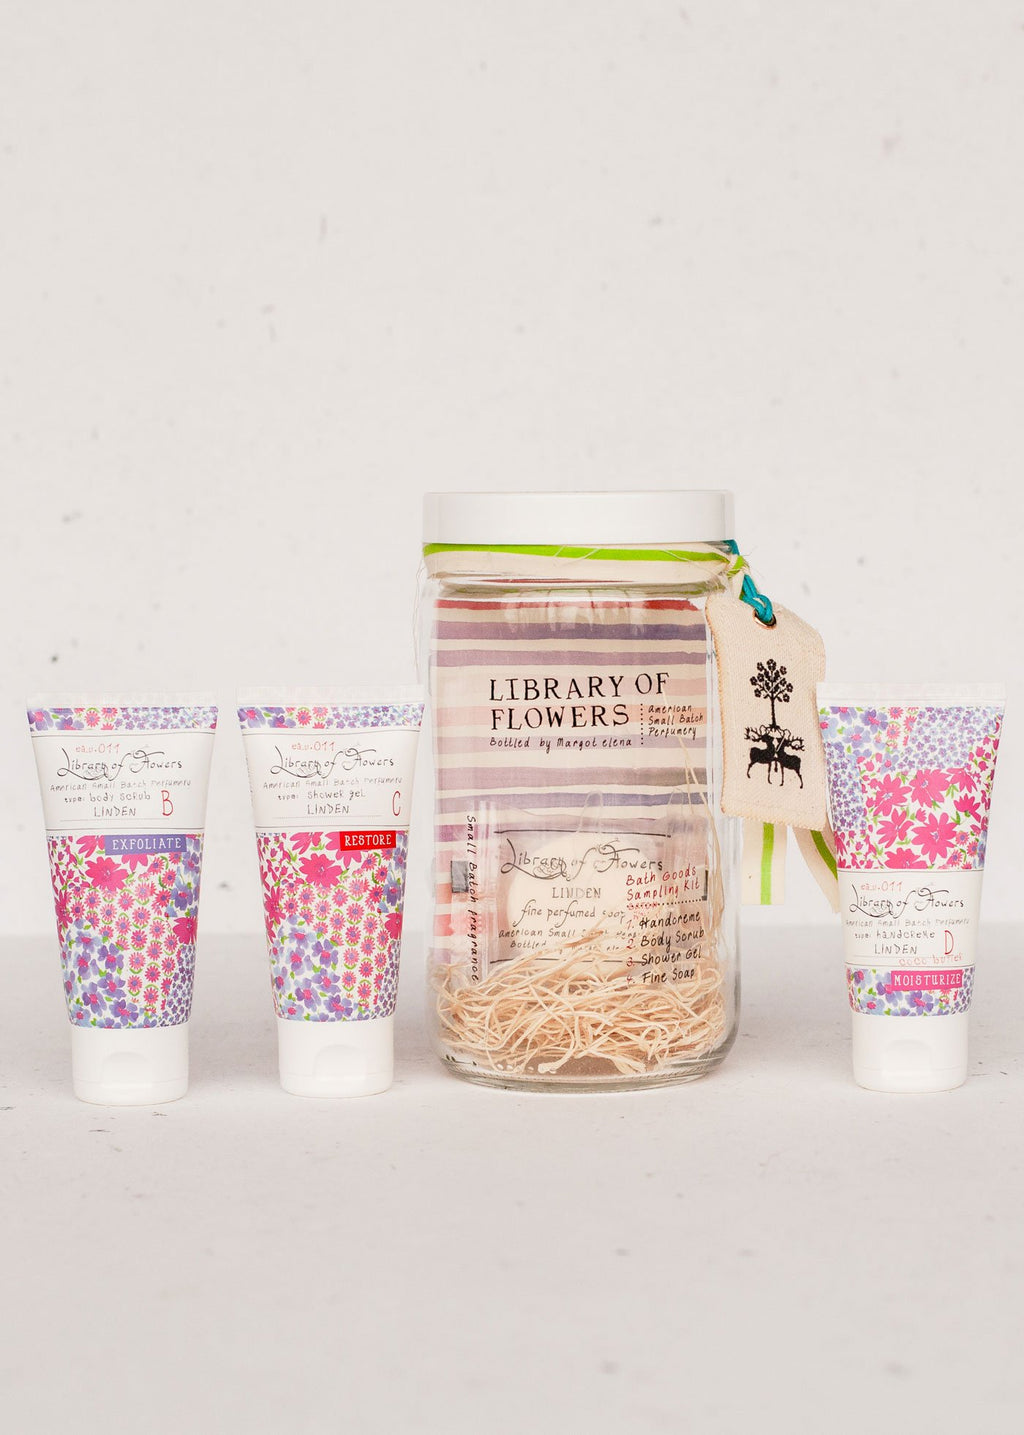 LIBRARY OF FLOWERS | Linden Bath Goods Sampling Kit